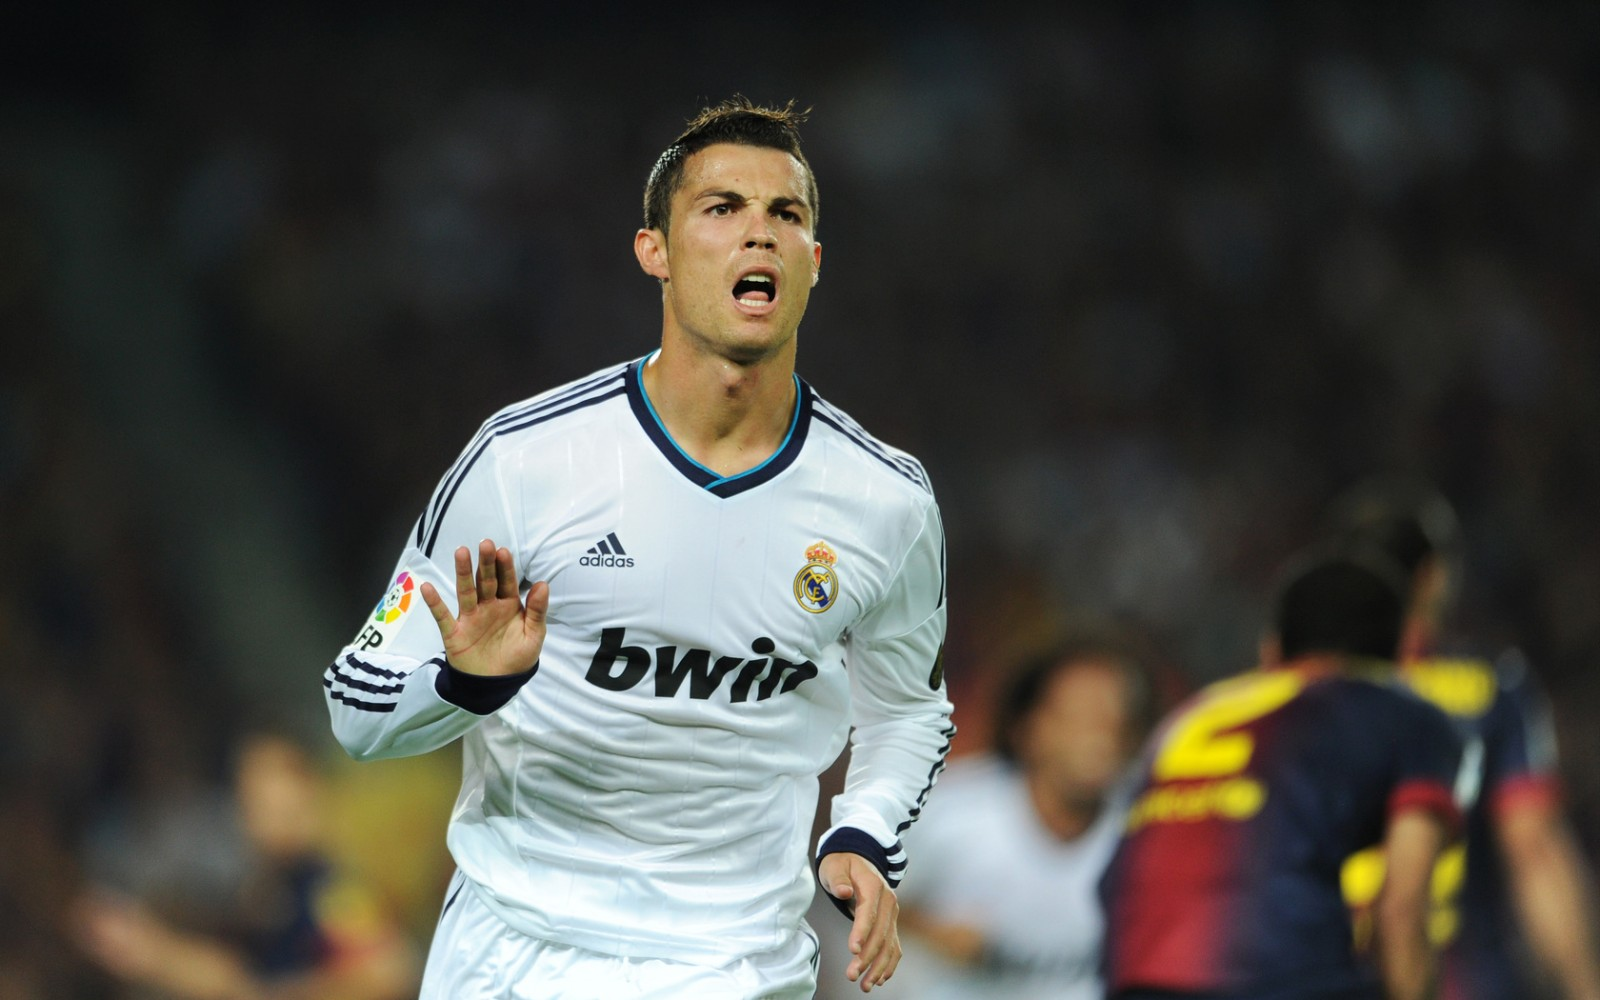 Ronaldo Best Football Player Wallpaper